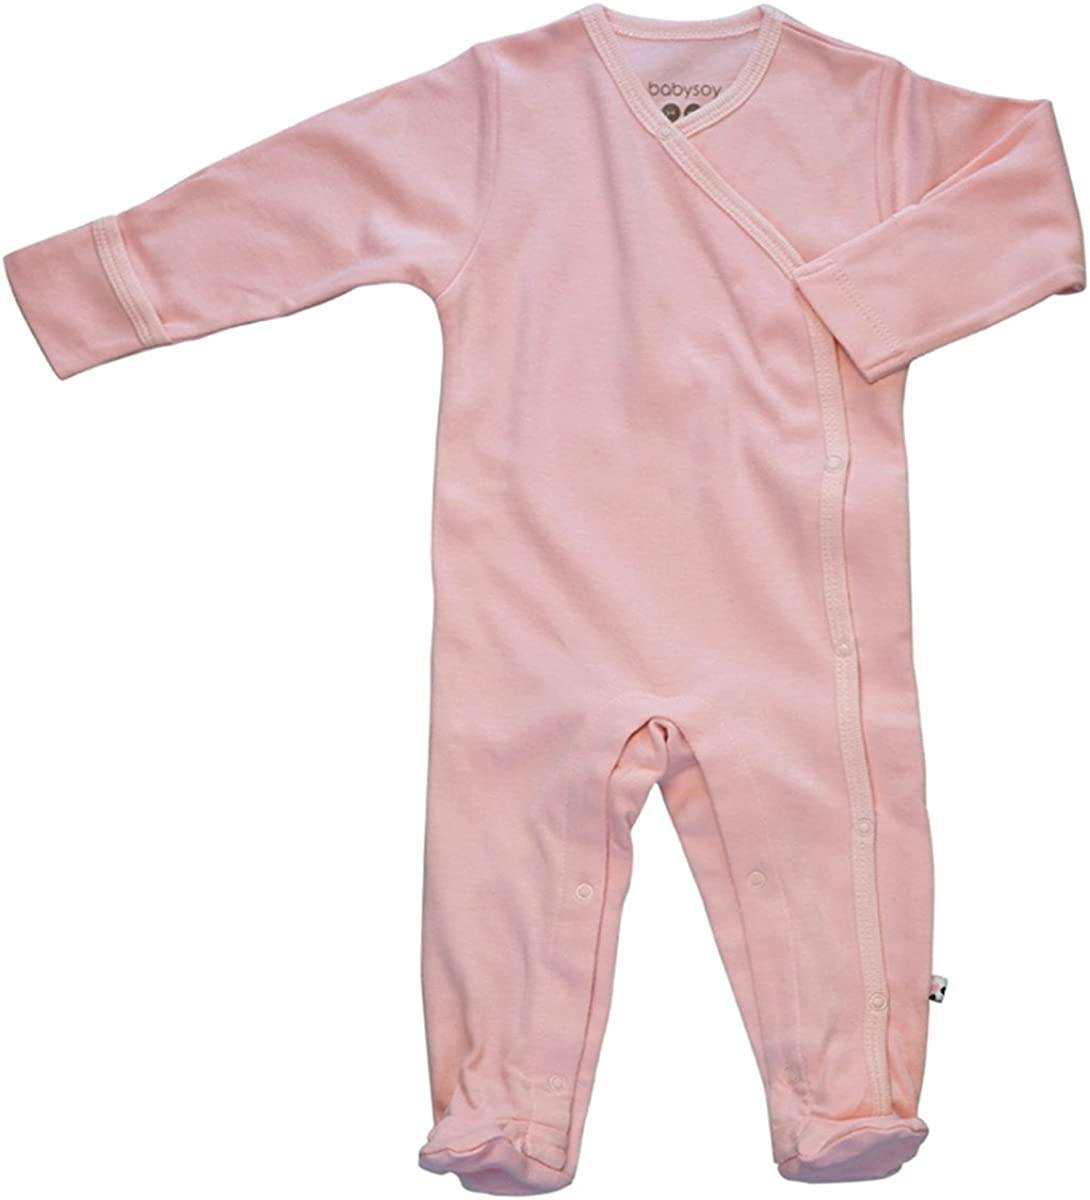 Babysoy Organic Long Sleeve Solid National uniform free shipping Footie Coverall Inventory cleanup selling sale